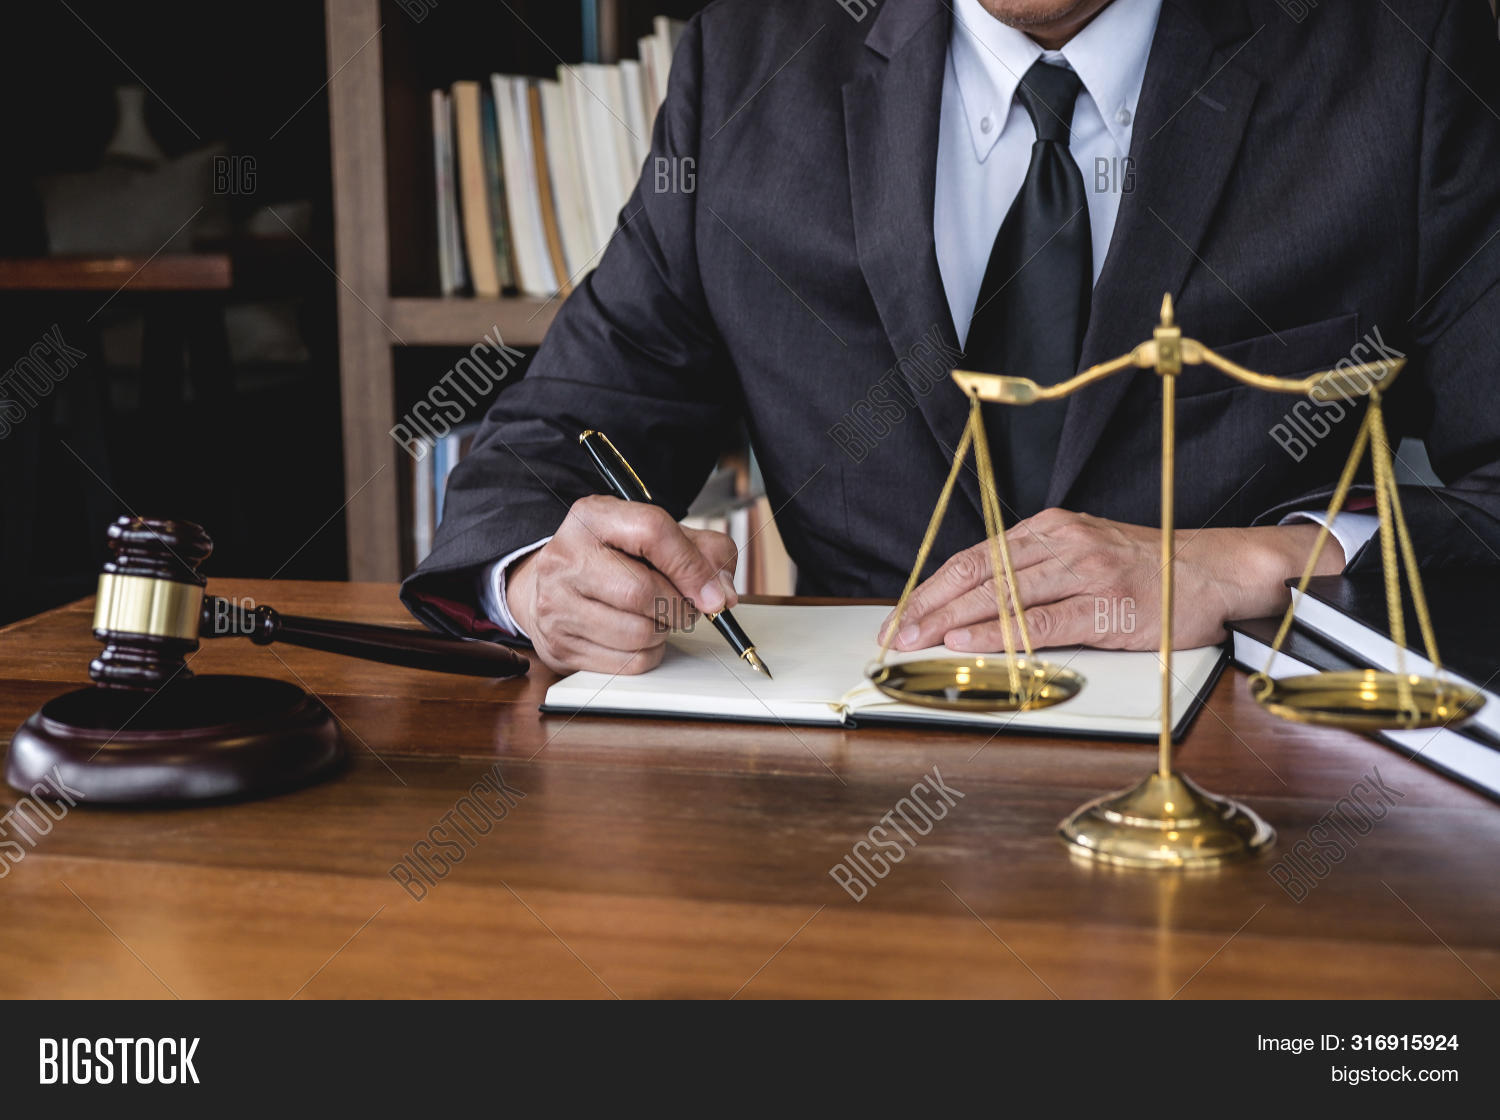 advice,adviser,advocate,agreement,attorney,auction,barrister,book,business,businessman,communication,consult,consultant,contract,counselor,court,courtroom,crime,criminal,customer,dispute,document,education,estate,fairness,firm,gavel,hammer,instructive,judge,jurisprudence,jurist,justice,law,lawyer,legal,legislation,legislator,meeting,notary,office,prosecutor,real,recommend,service,solicitor,statue,verdict,work,workplace